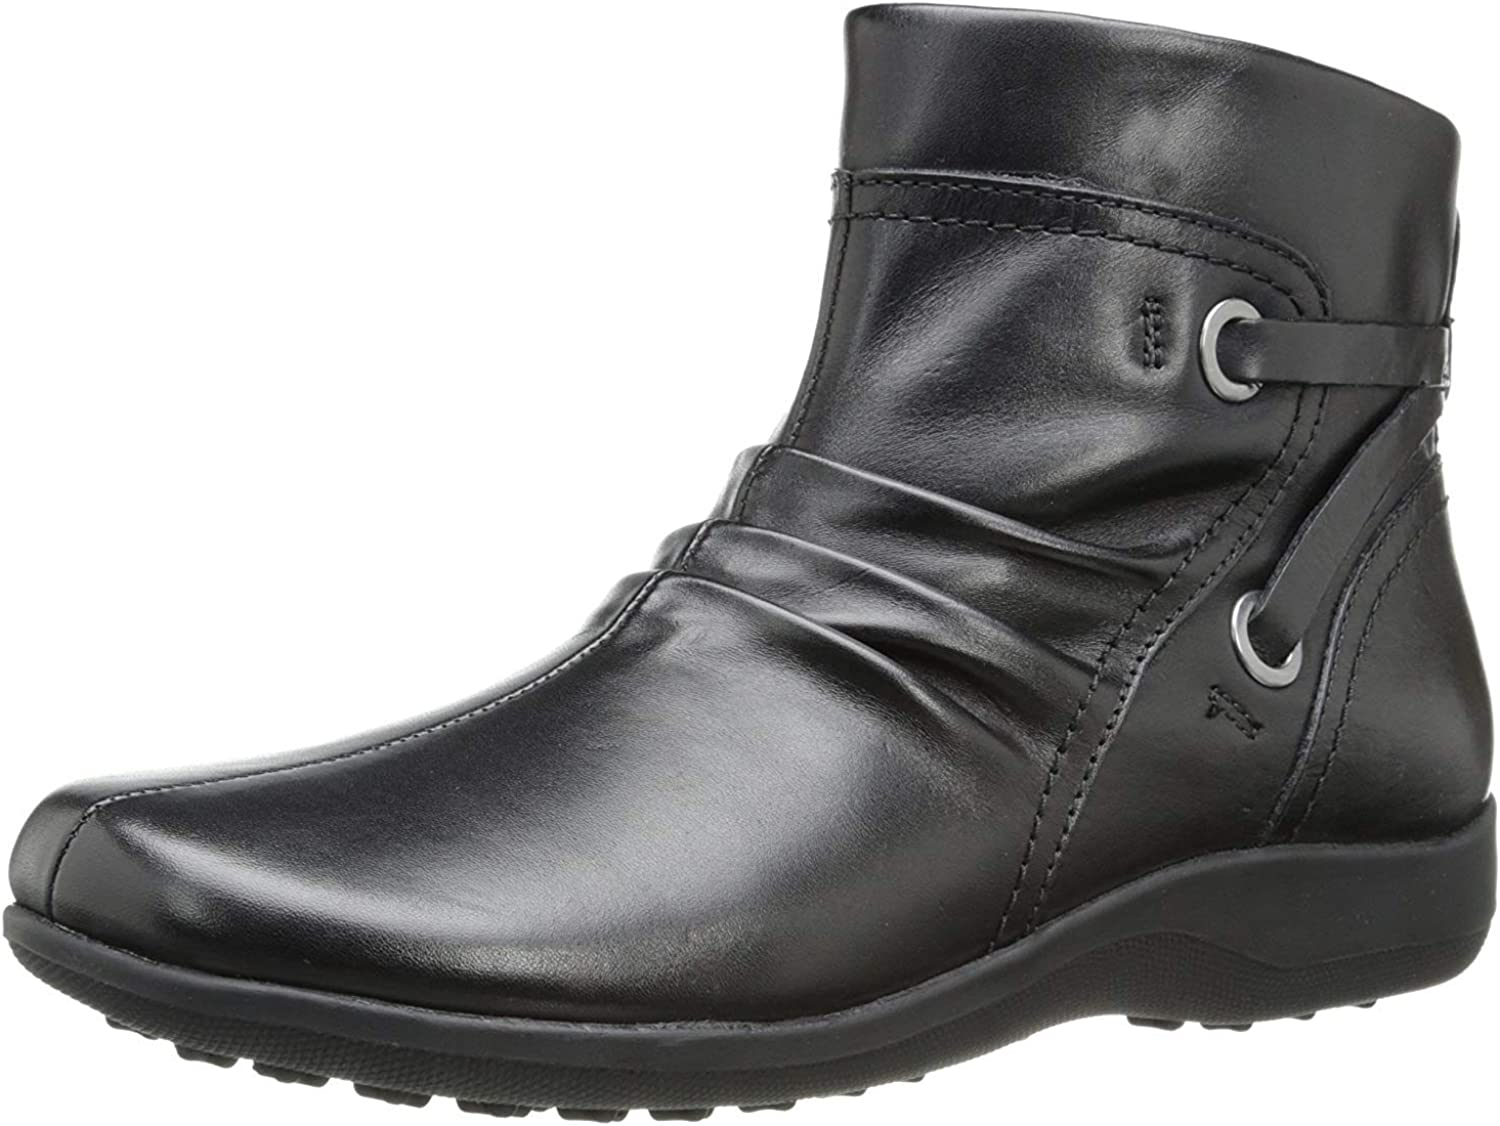 Walking Cradles Womens Zinc Leather Closed Toe Ankle Fashion Boots